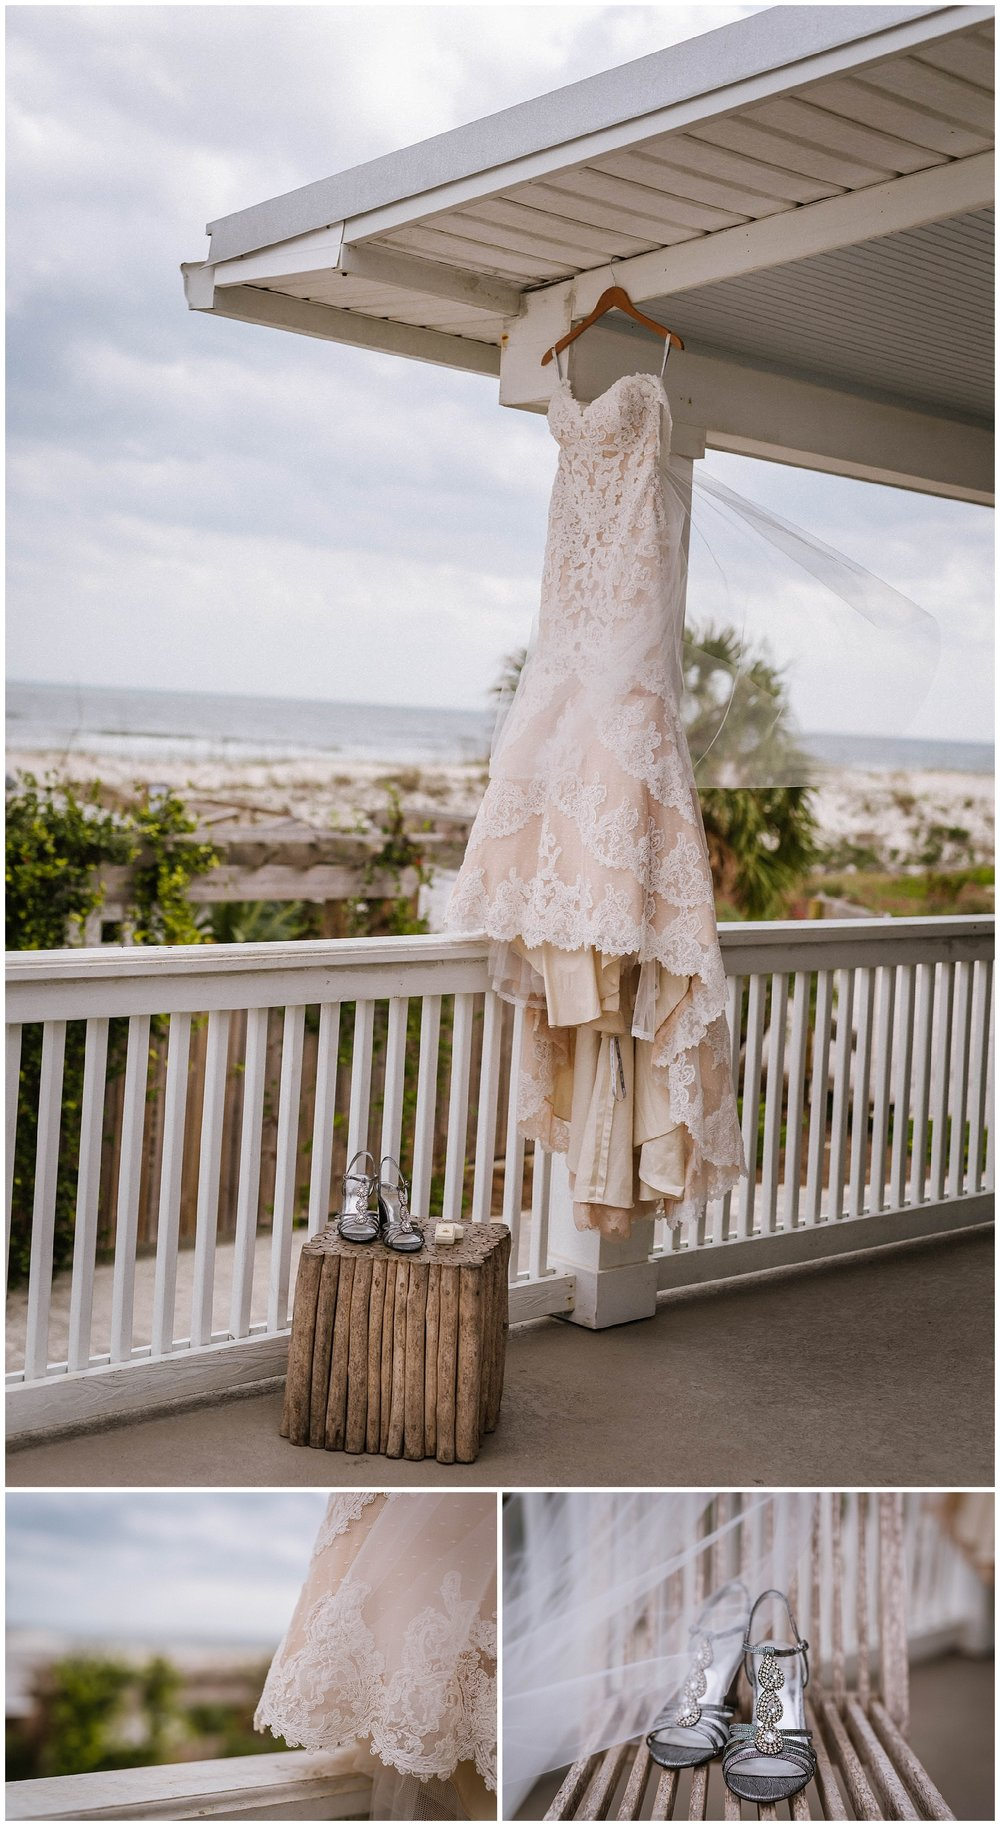 st-augustine-wedding-photographer-rainy-lightner-museum-flagler-casa-monica_0002.jpg